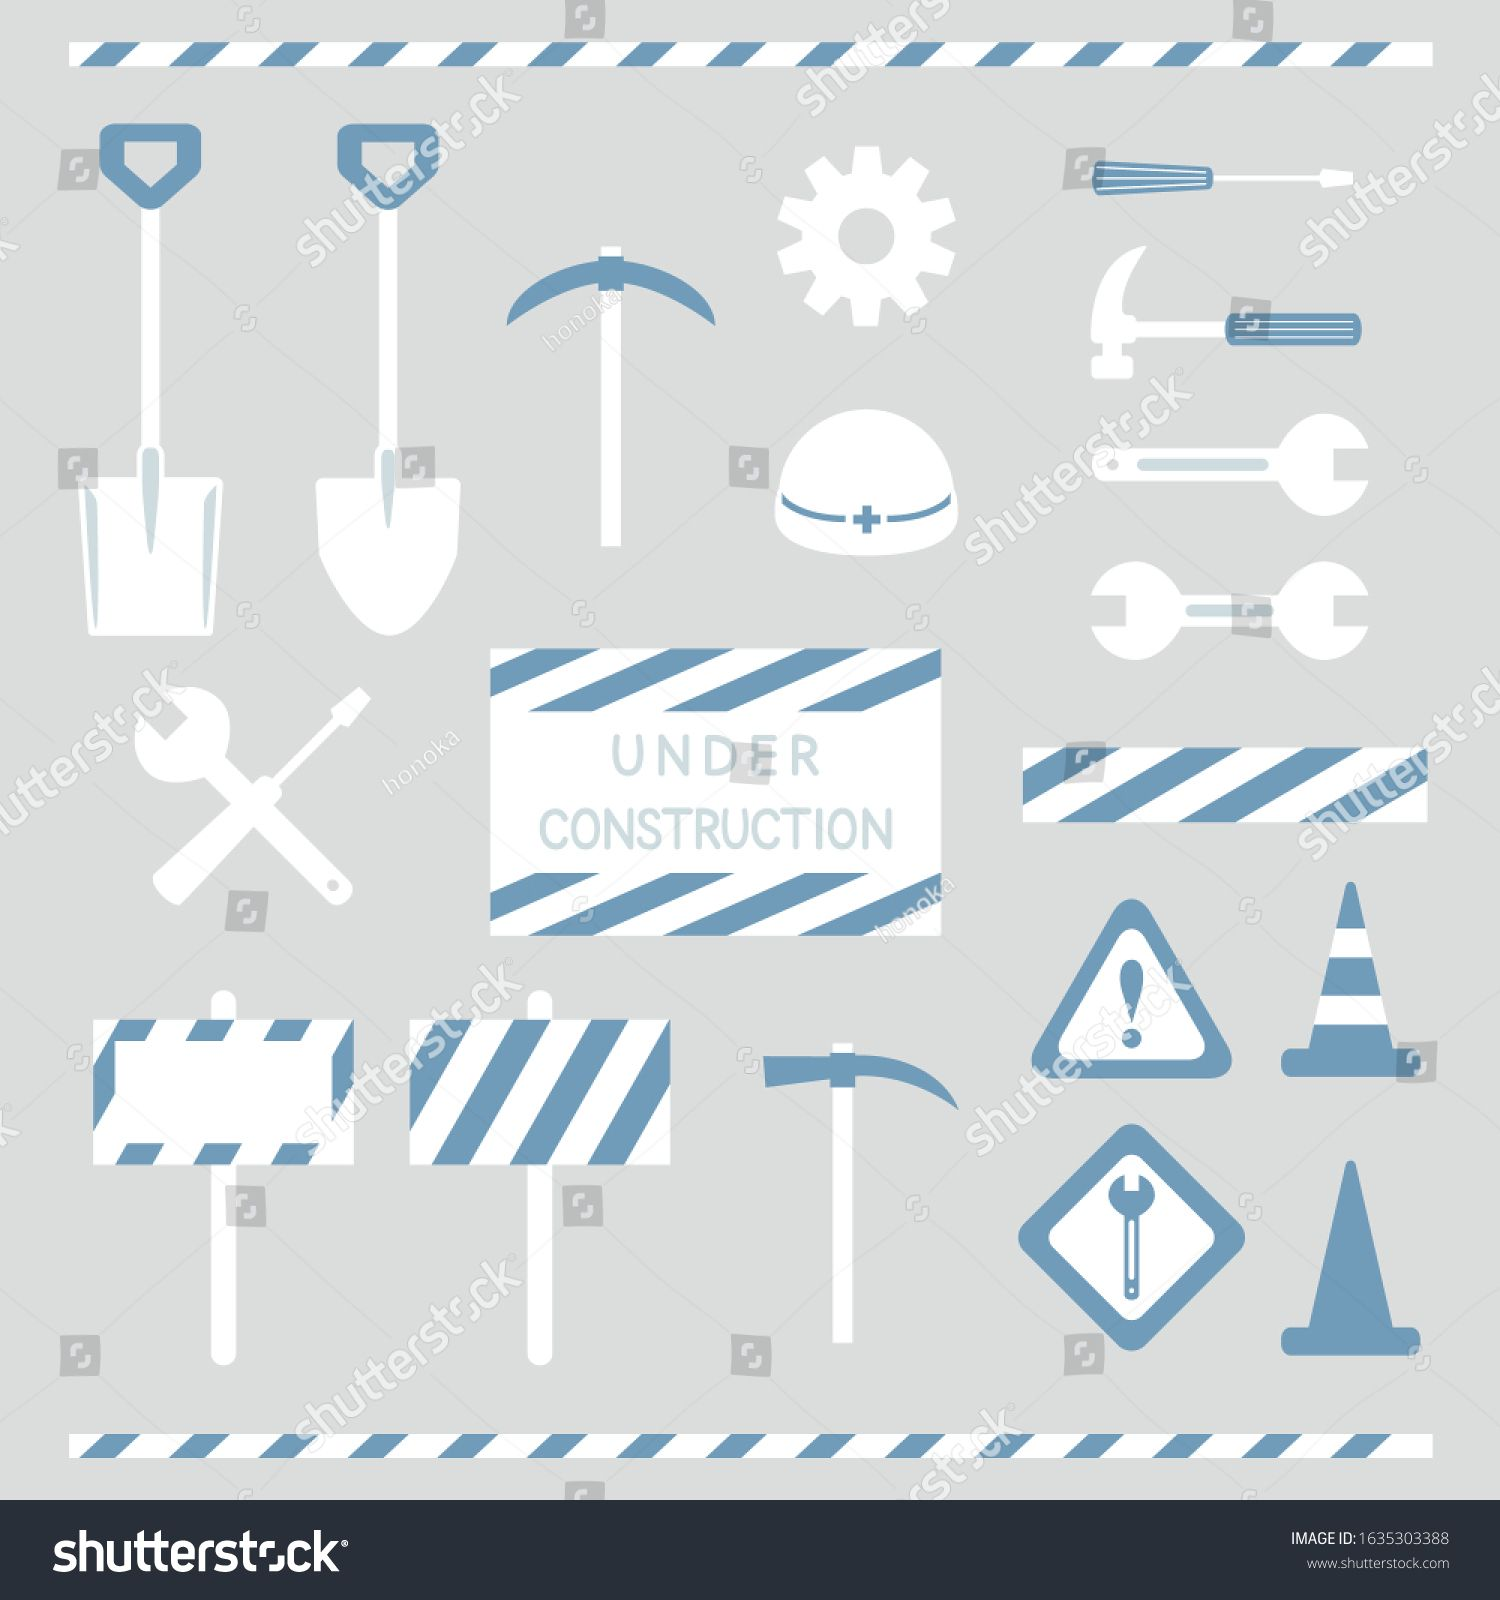 Set of maintenance and under construction objects \u002F